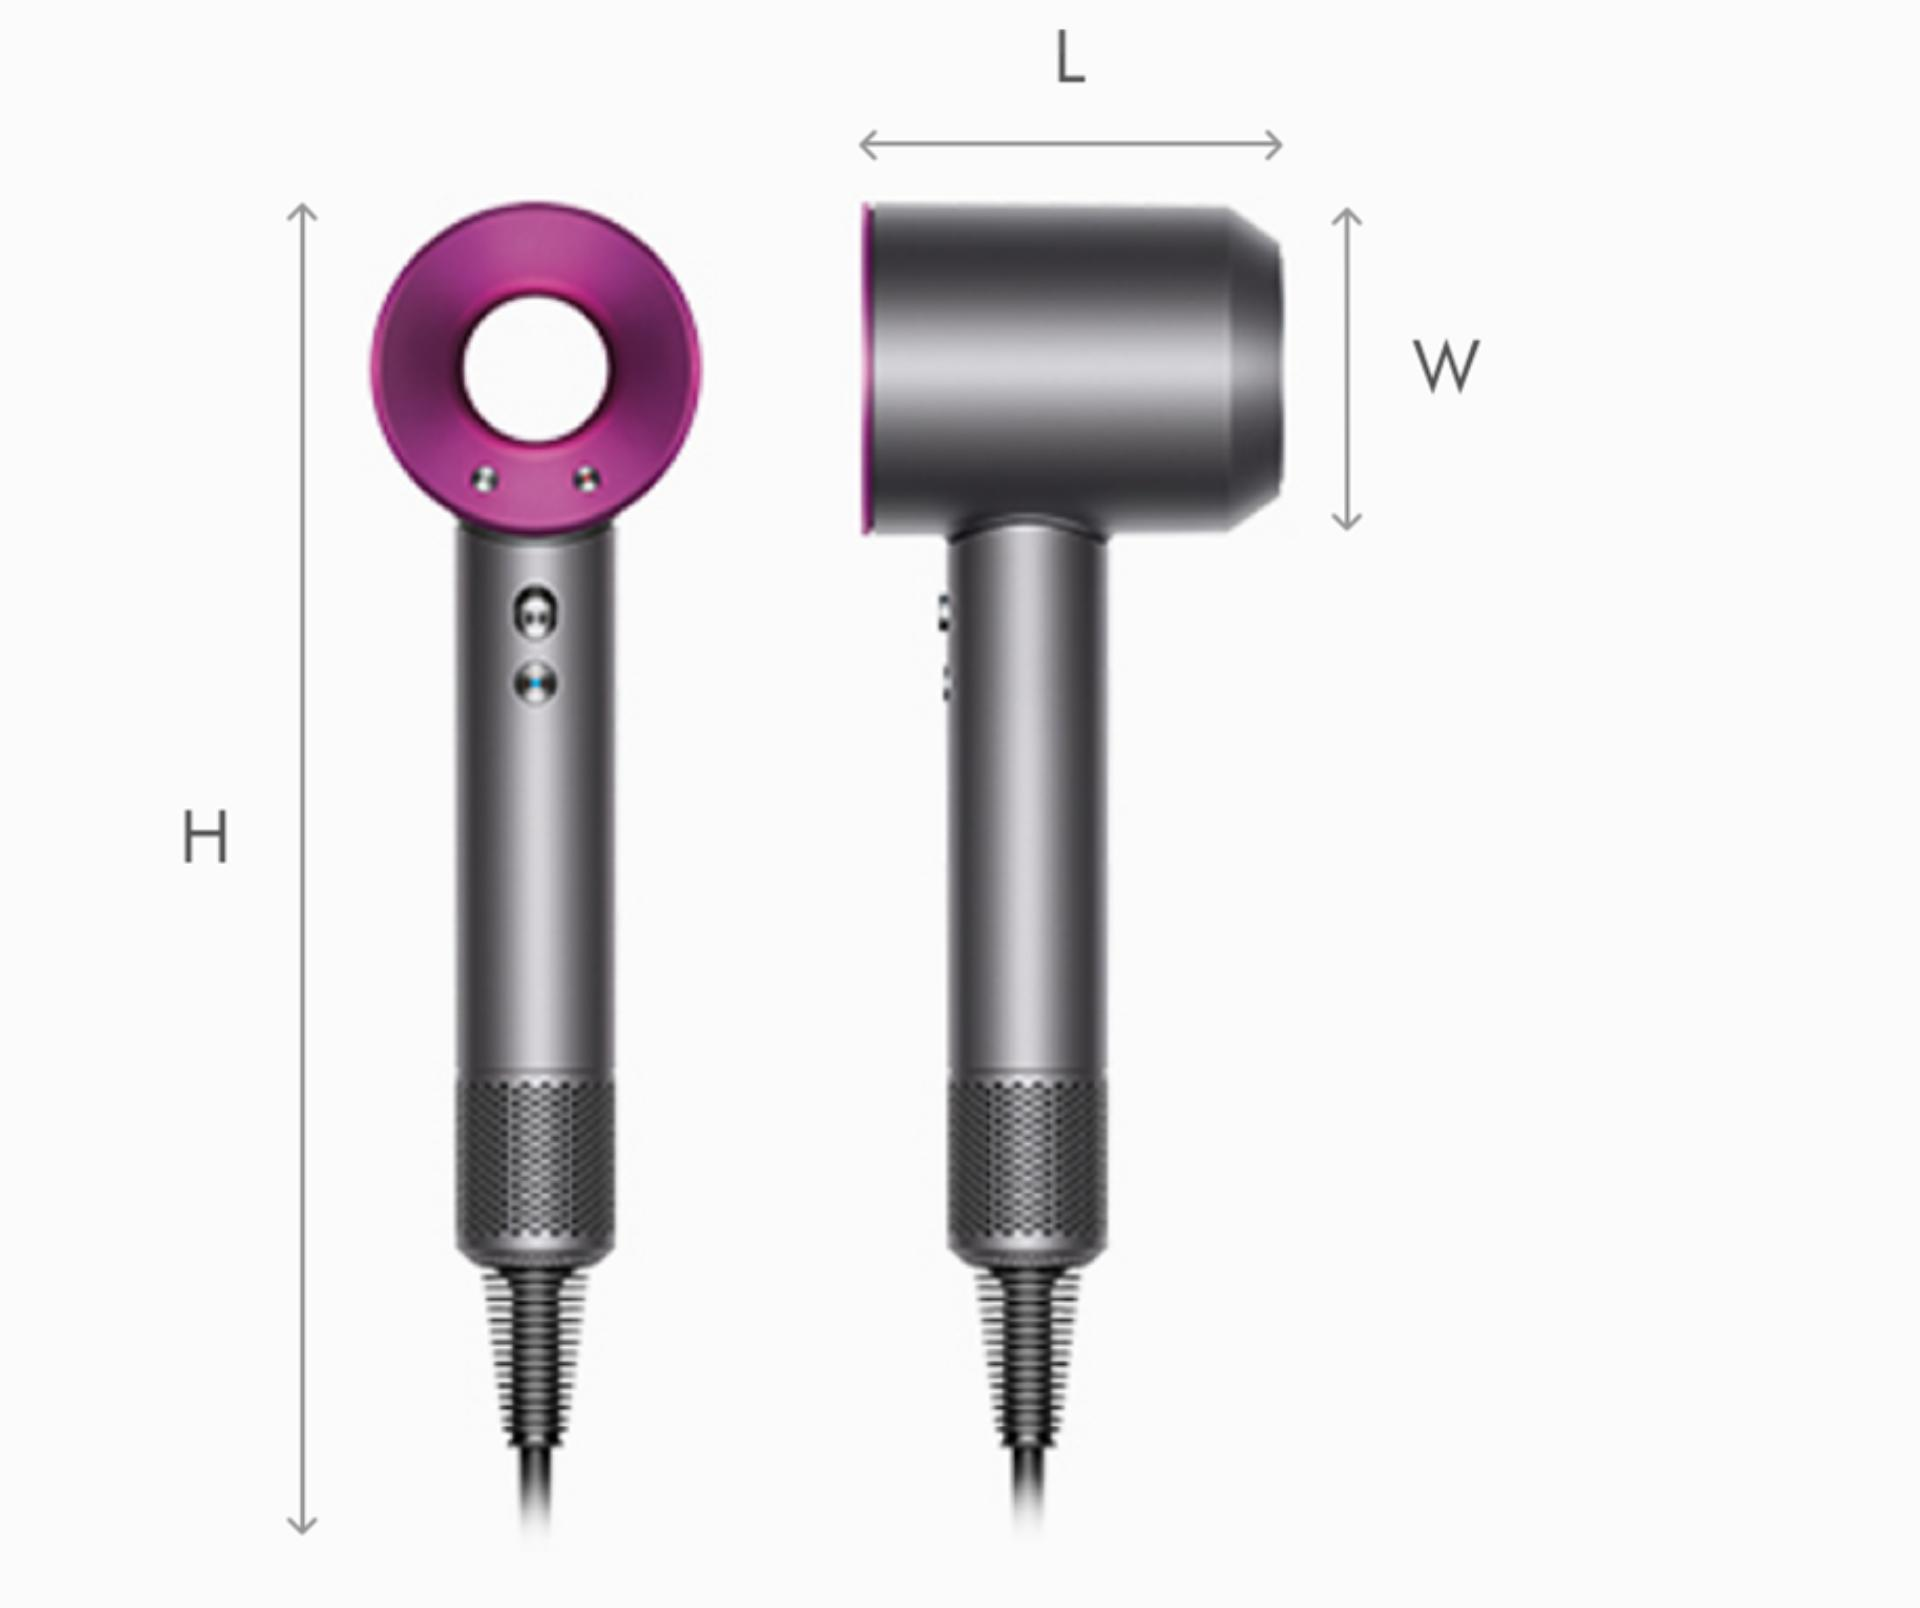 Illustration of Dyson Supersonic hair dryer dimensions